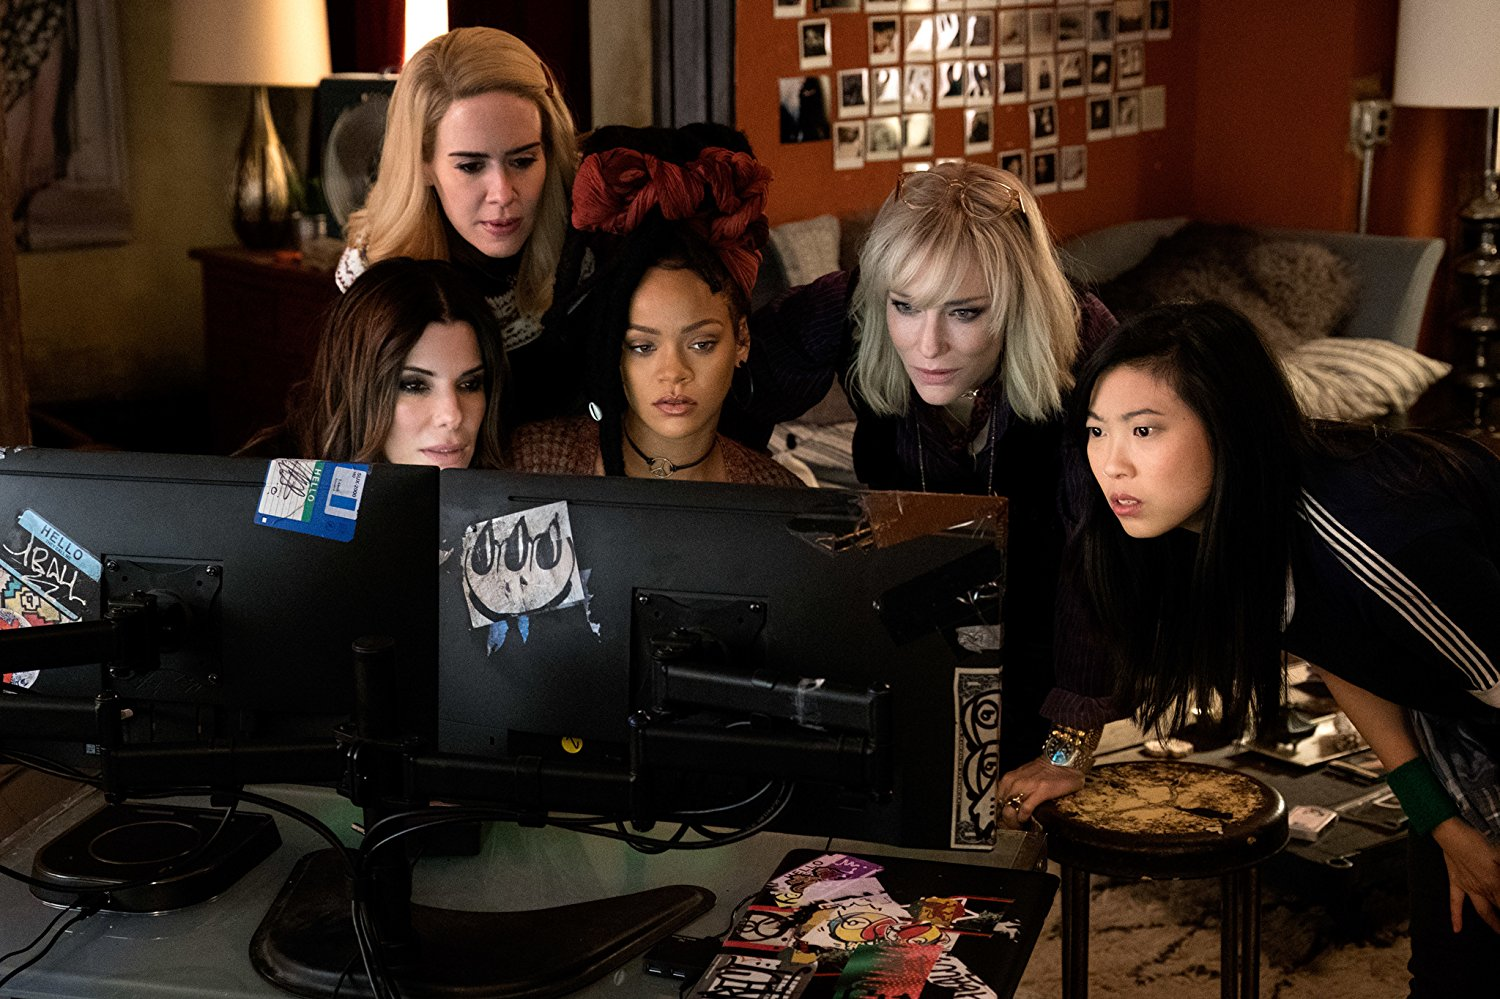 Ocean's 8 proves that a great cast can make up for a middling movie